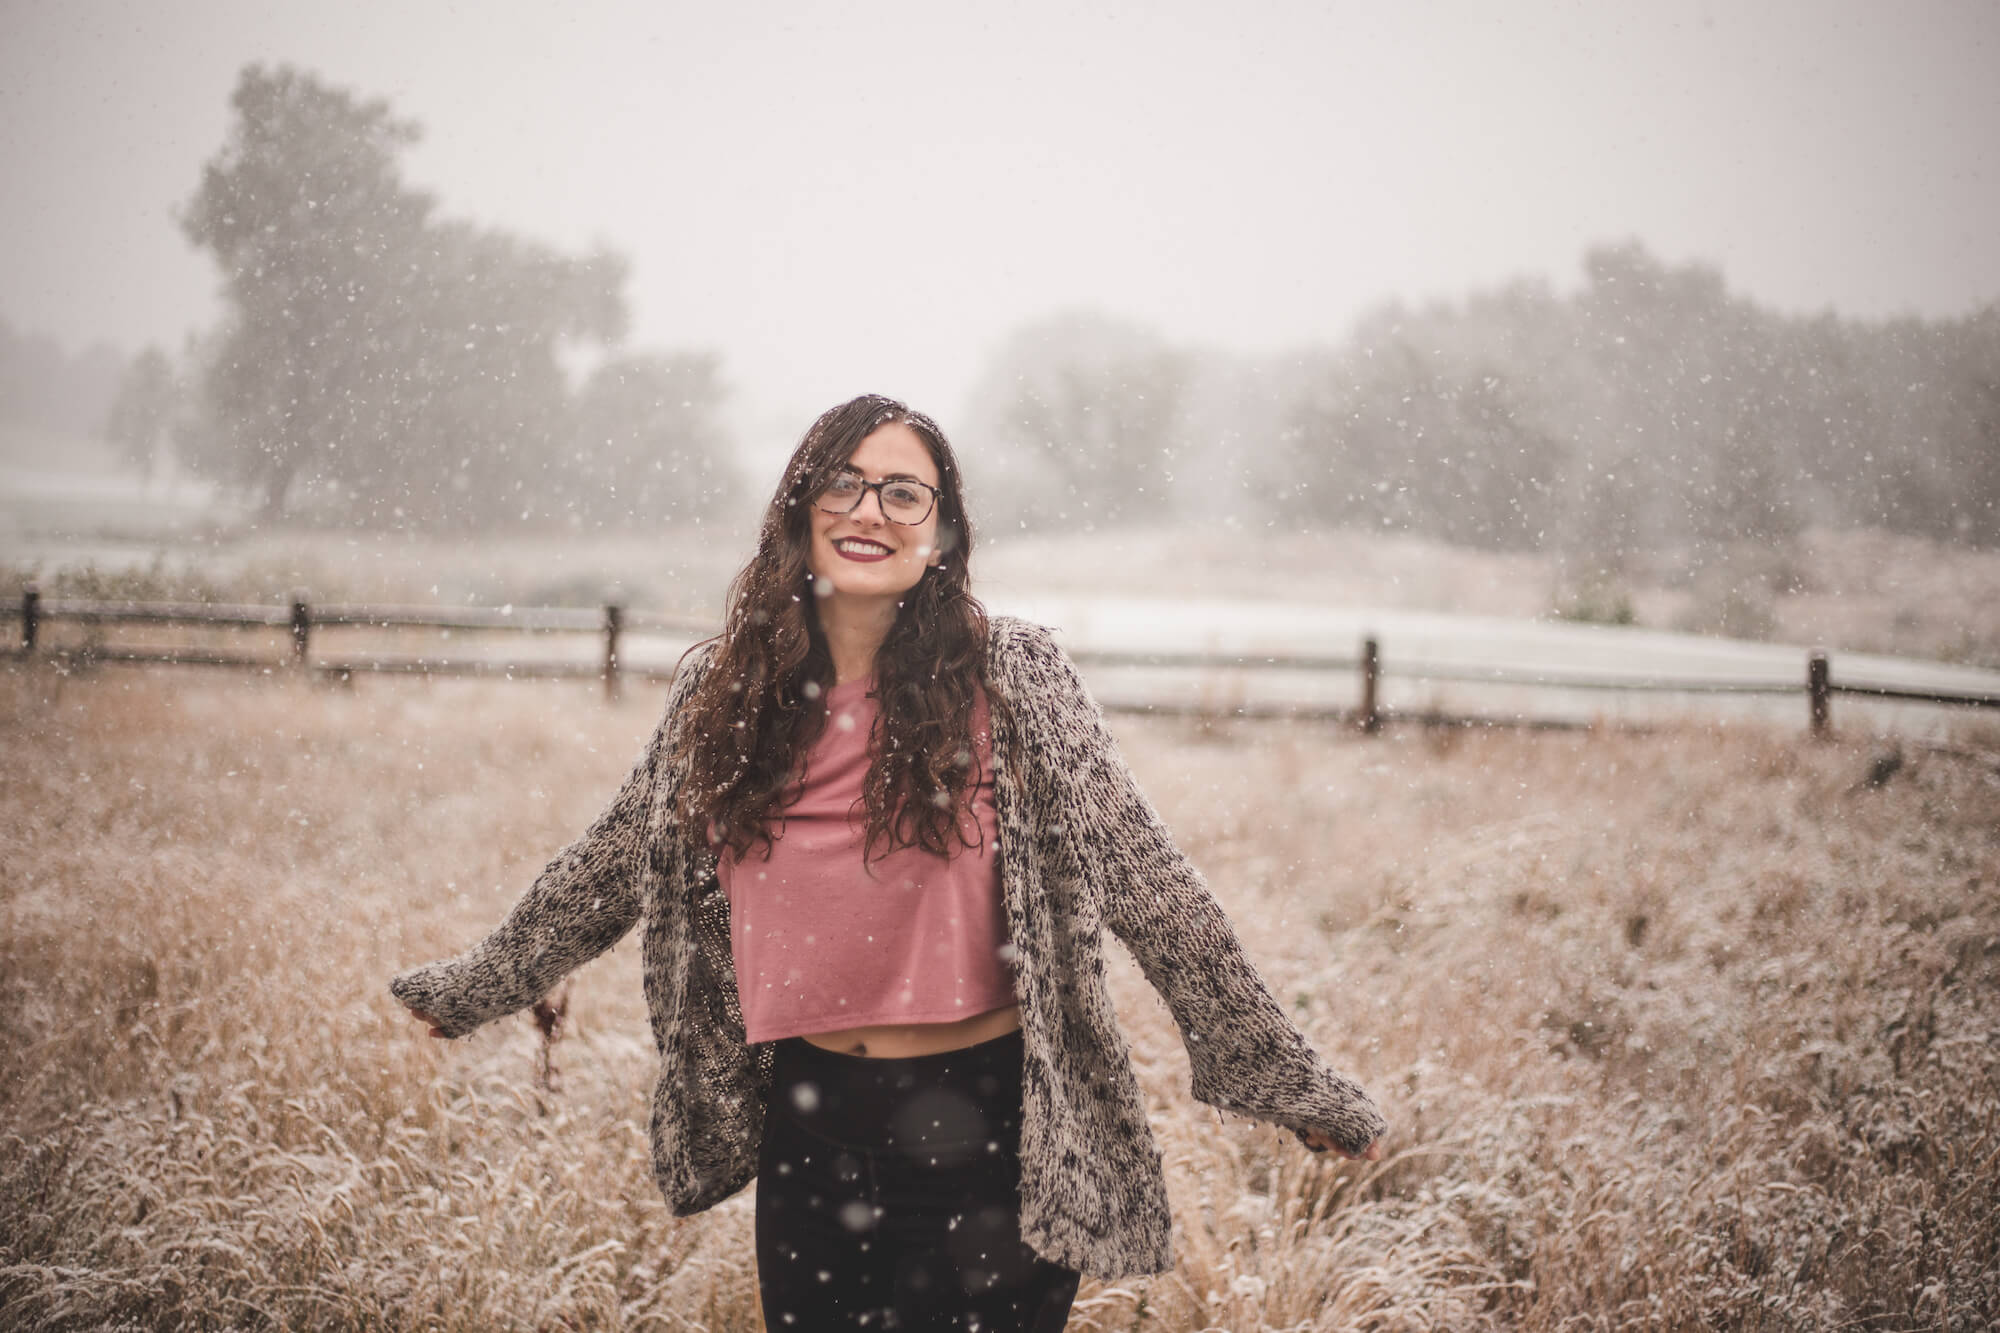 Kelsey is wearing glasses, a pink shirt, black and white cardigan, and smiling wide with her arms out during a snowfall in Colorado.